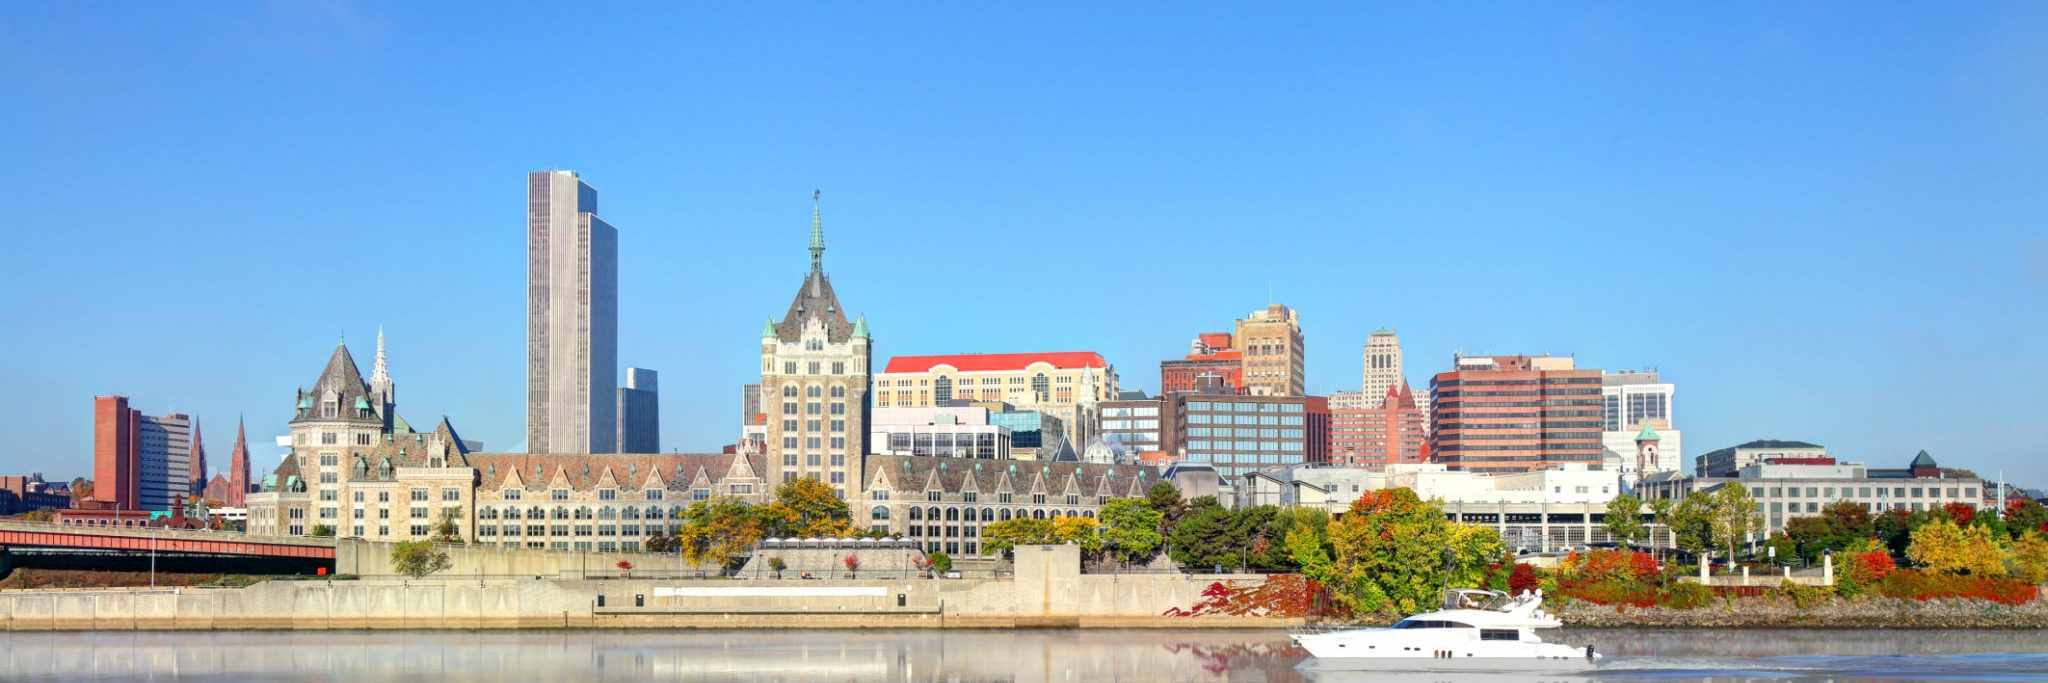 """<a href=""""https://congregationbethabrahamjacob.shulcloud.com/why-albany.html""""                                     target="""""""">                                                                 <span class=""""slider_title"""">                                     Check Out Albany                                </span>                                                                 </a>                                                                                                                                                                                       <span class=""""slider_description"""">Come visit us in Albany and learn more about the Capital Region.</span>                                                                                     <a href=""""https://congregationbethabrahamjacob.shulcloud.com/why-albany.html"""" class=""""slider_link""""                             target="""""""">                             Check Out Albany                            </a>"""